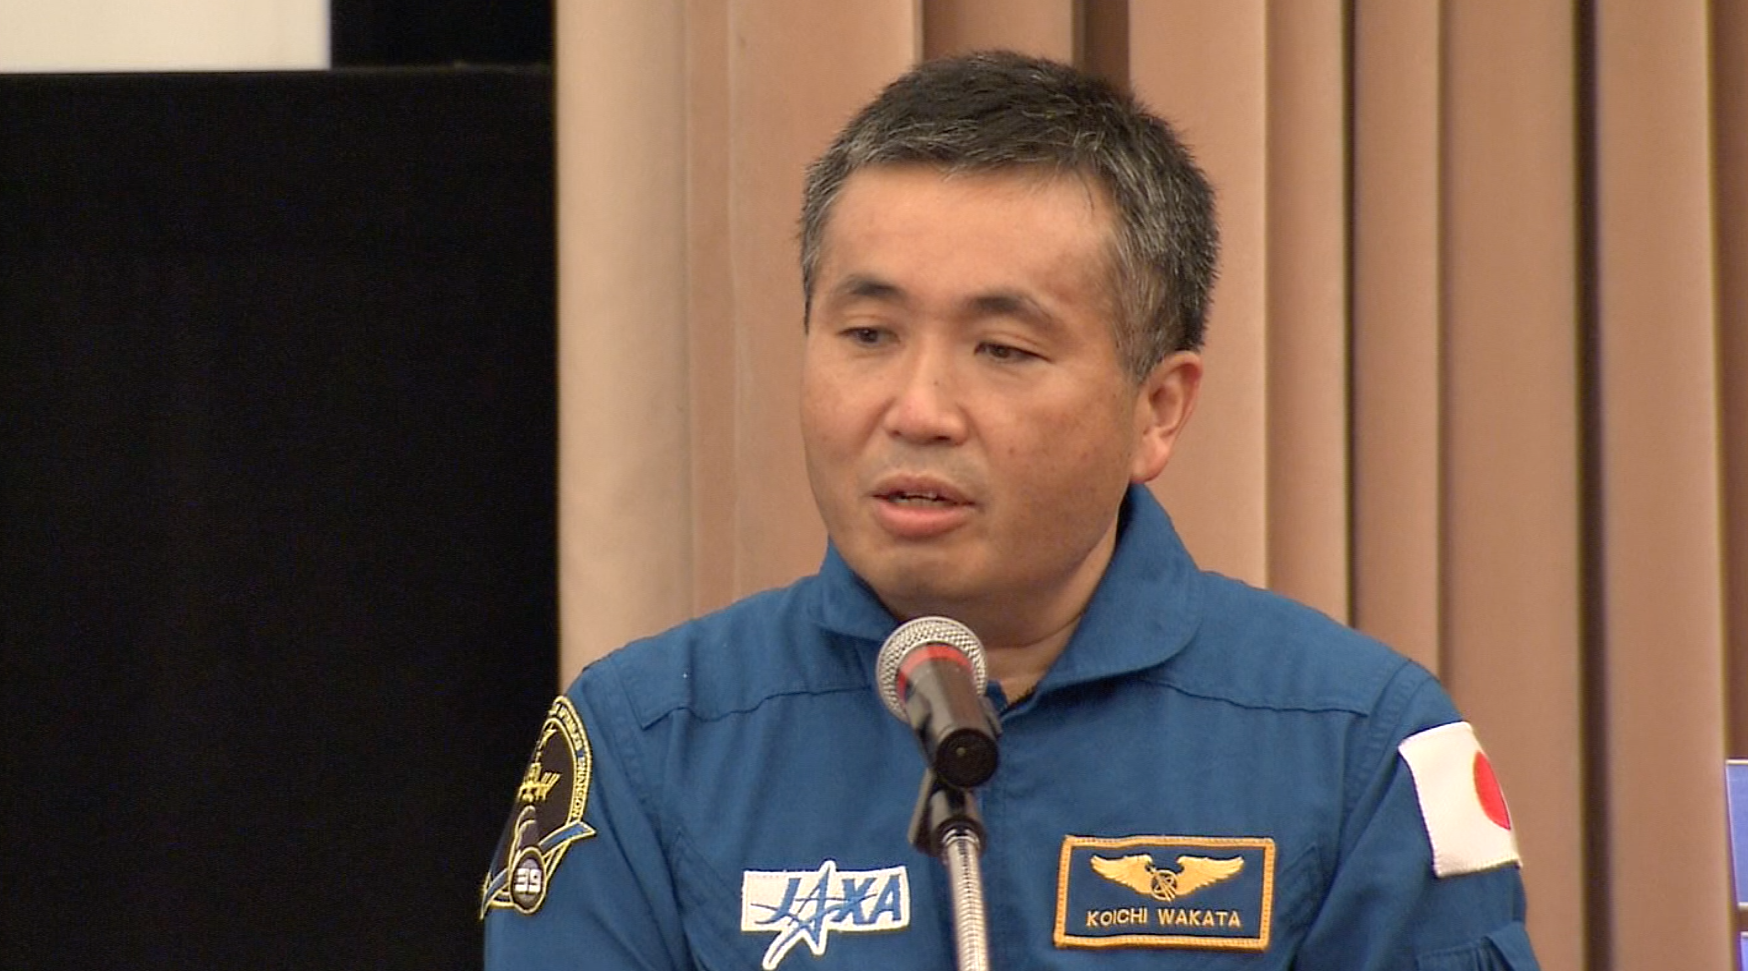 Japanese astronaut talks about mission